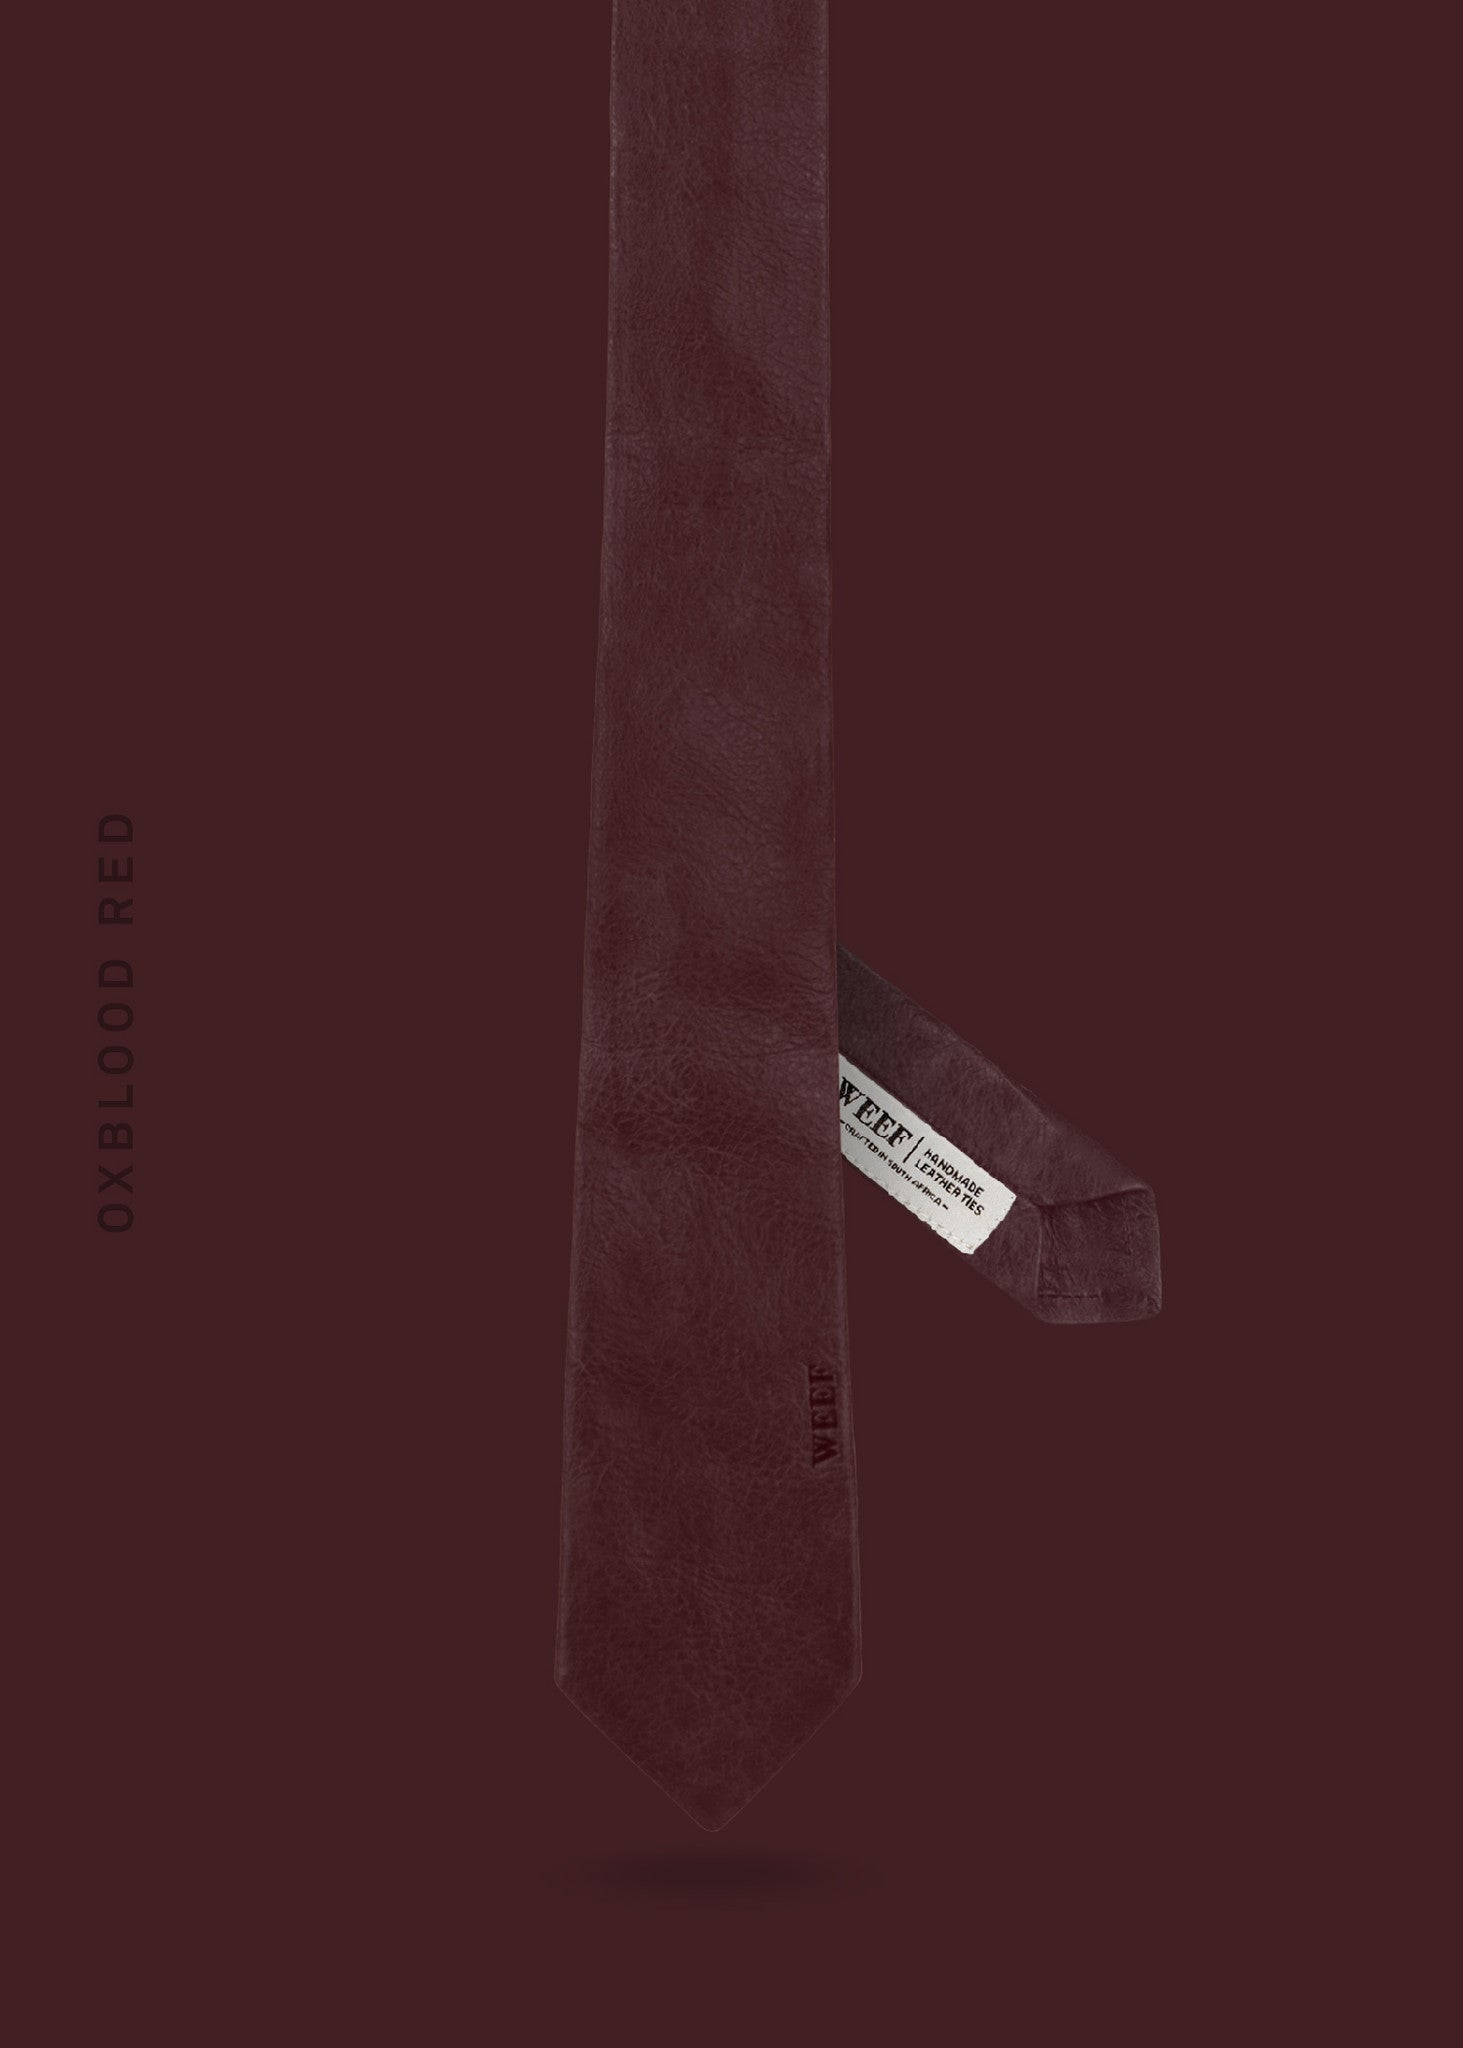 Skinny Tie No.1 – Oxblood Red